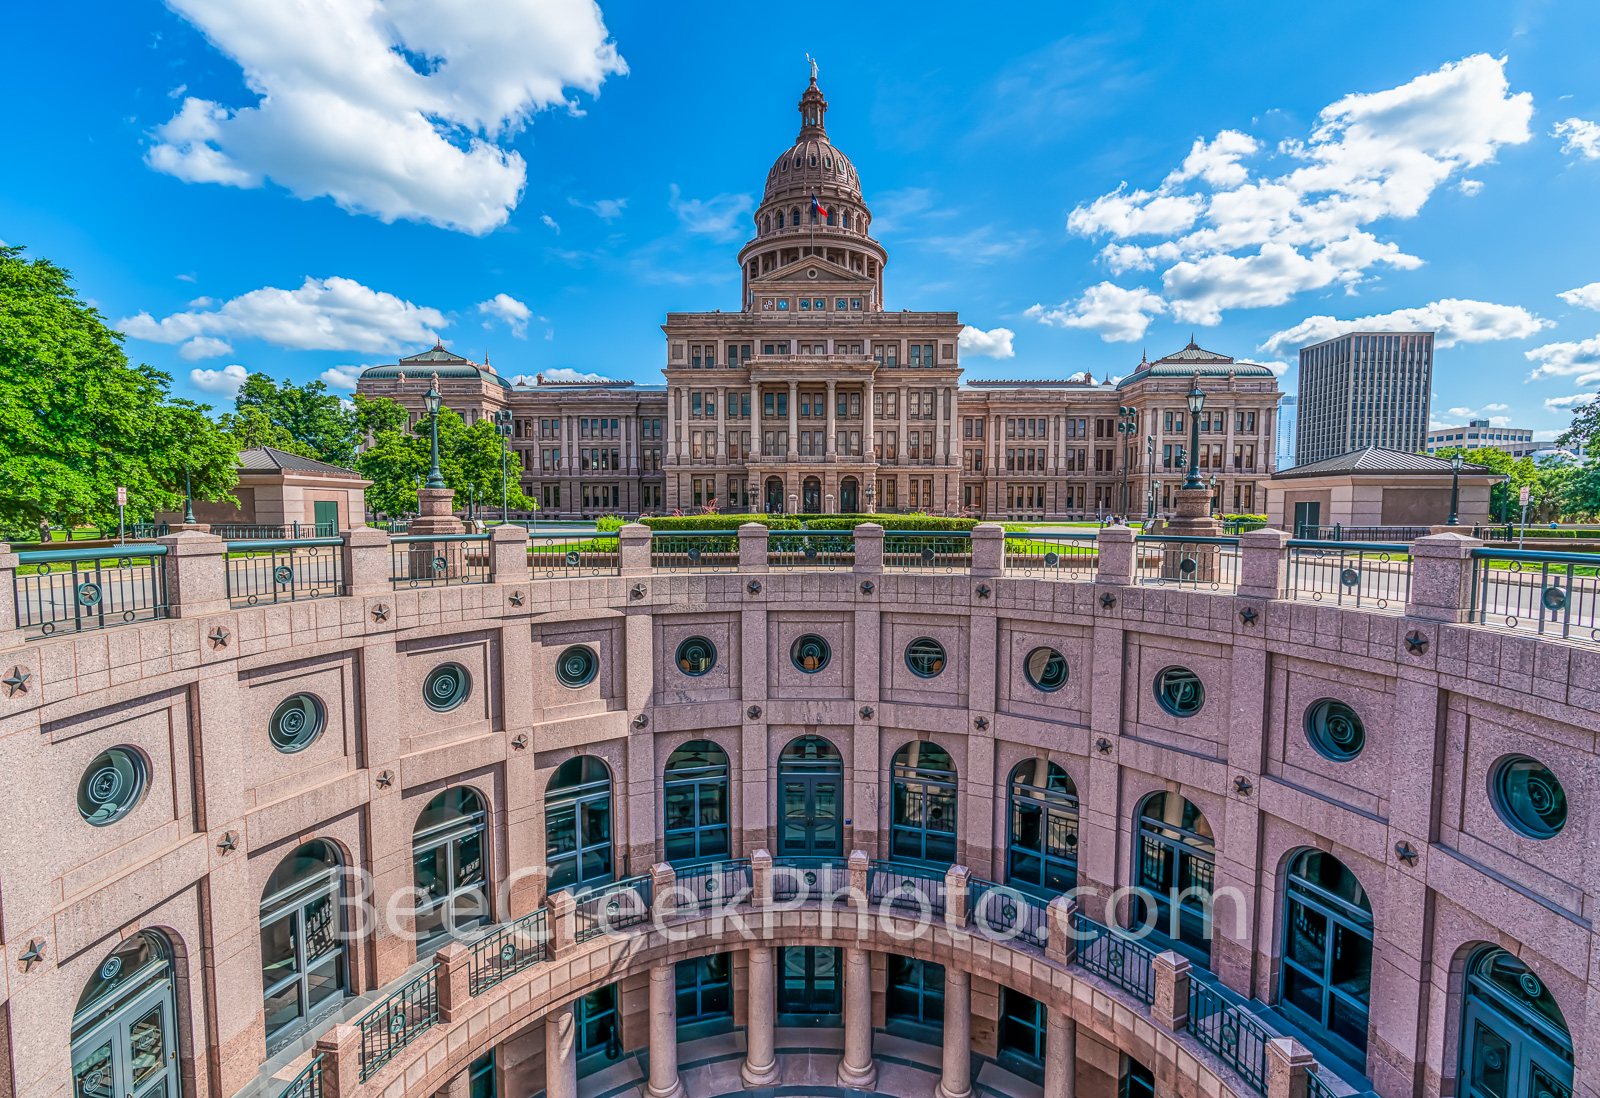 Texas State Capitol Rotundra  - We love the view of the outside rotundra at the Texas State Capitol with this blue sky and...